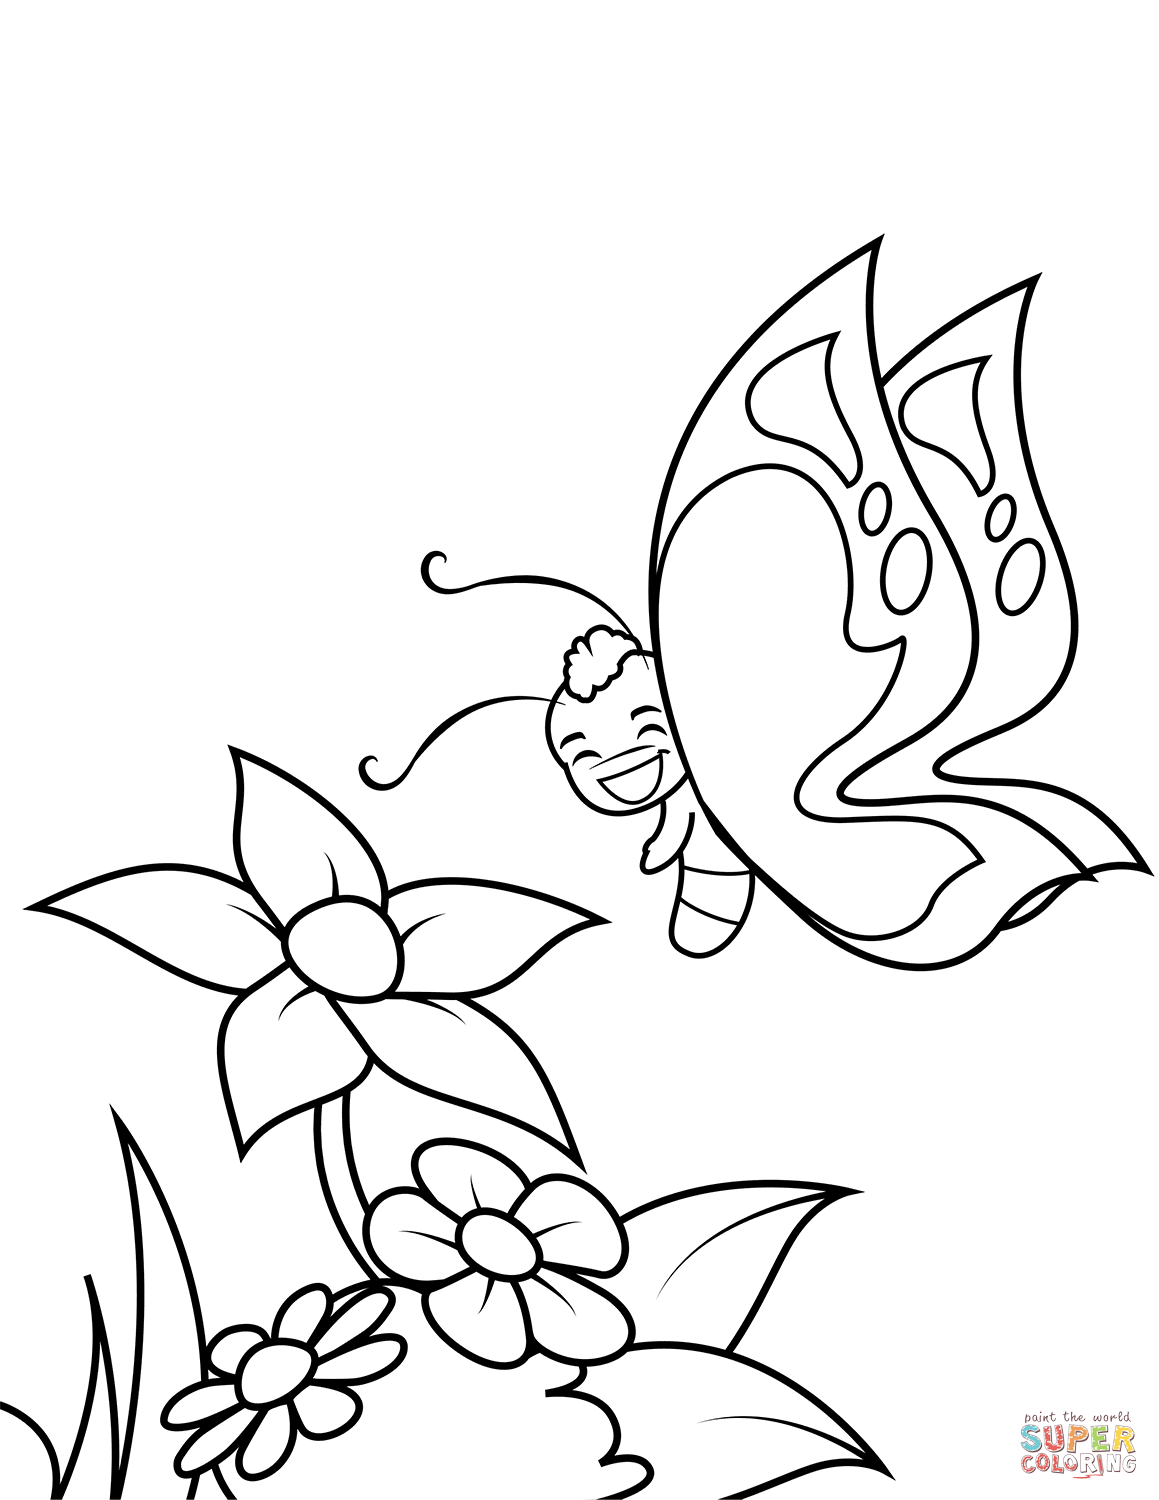 Cute Butterfly Boy Flies Over Flowers Coloring Page